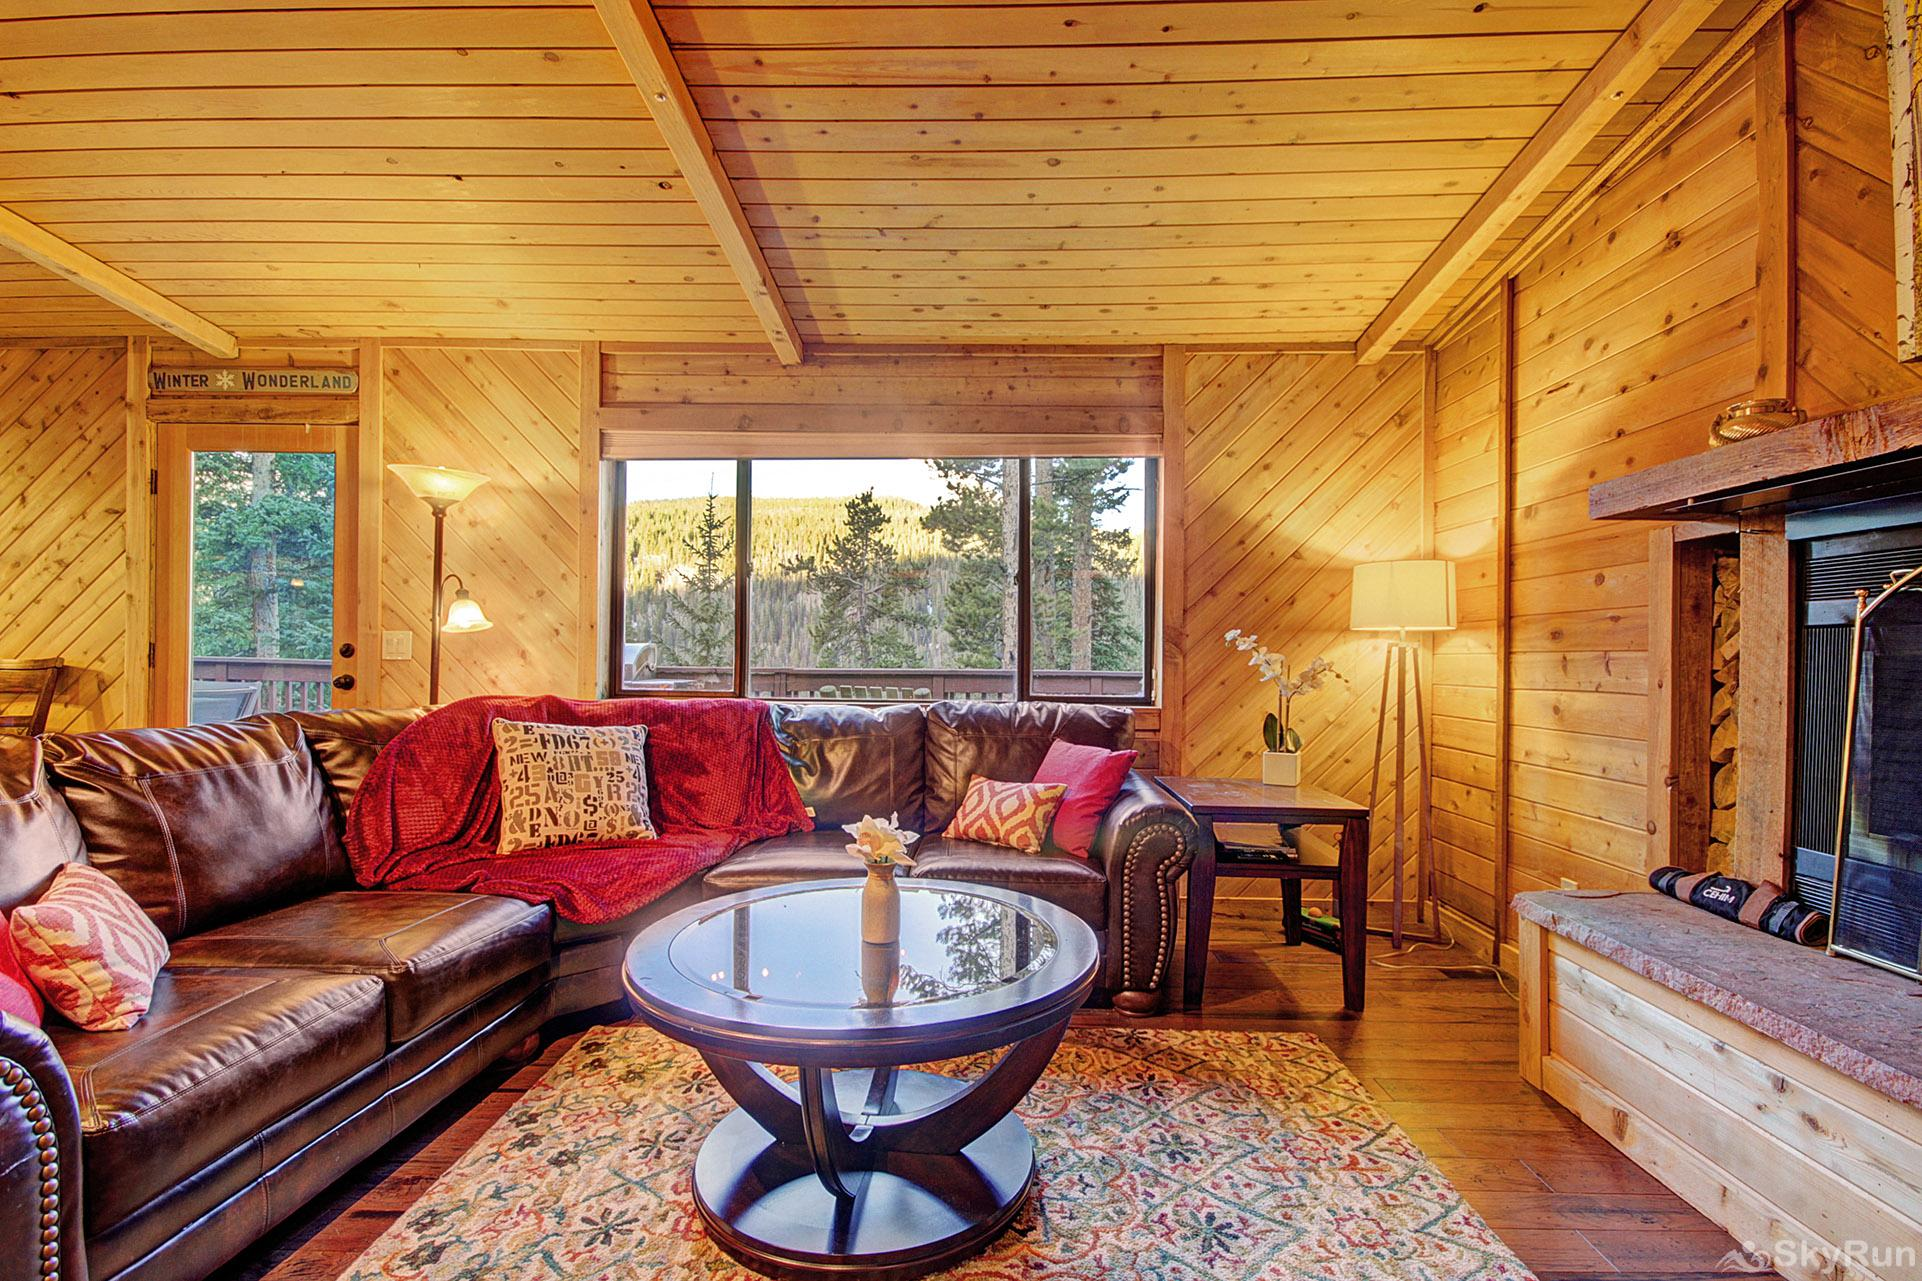 Gasthaus Breck Large living room window offers stunning views